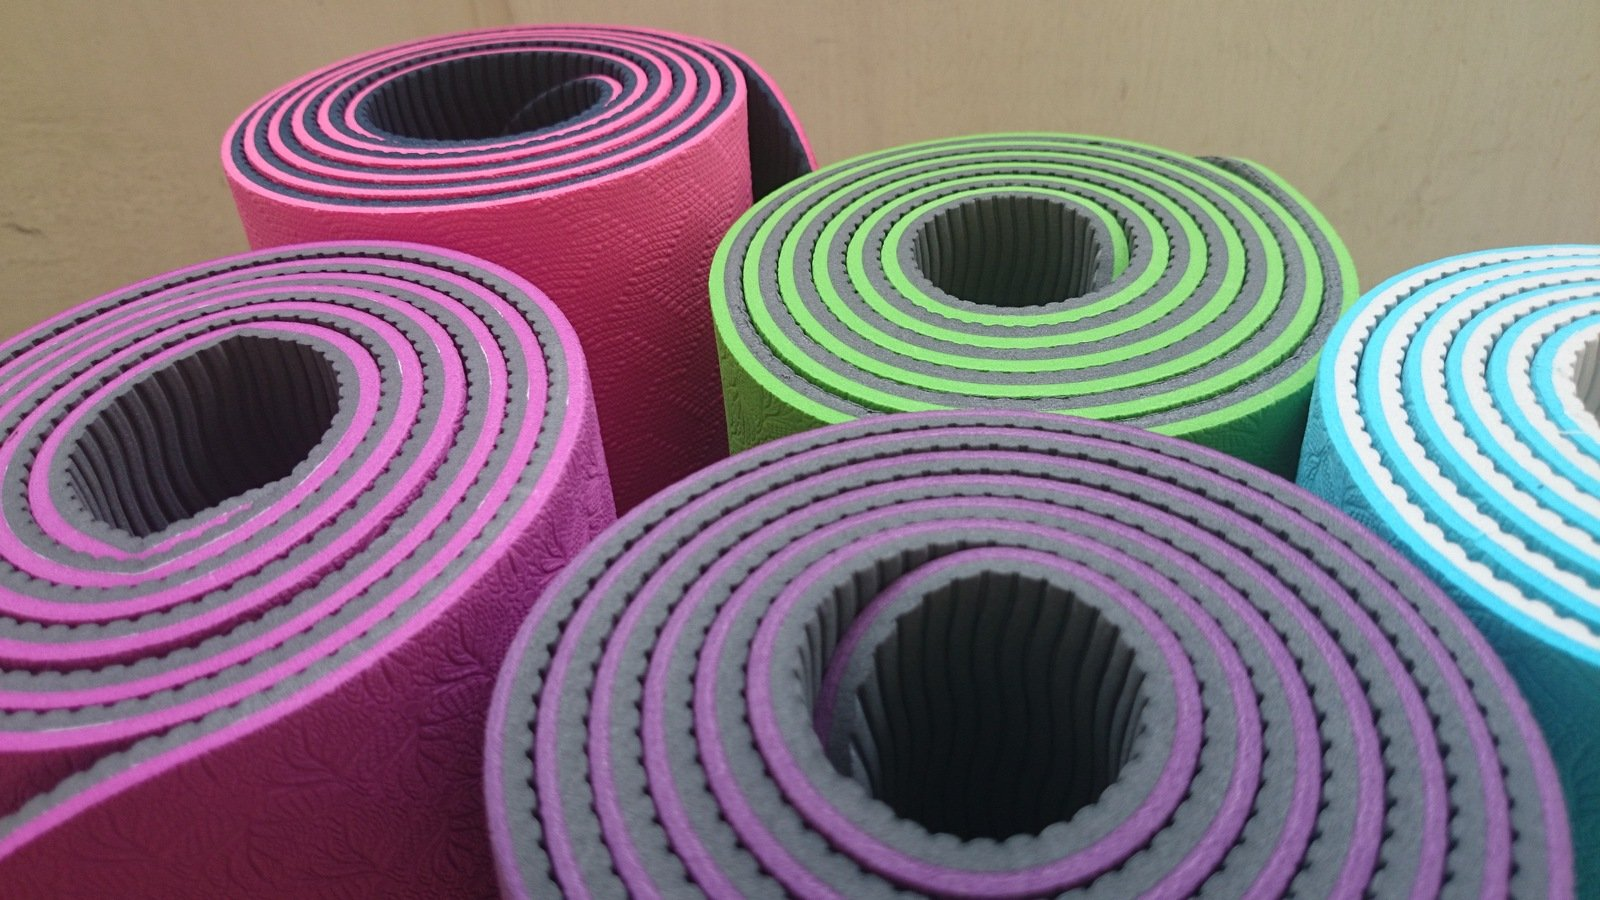 Free Yoga Mats Stock Photo Freeimages Com